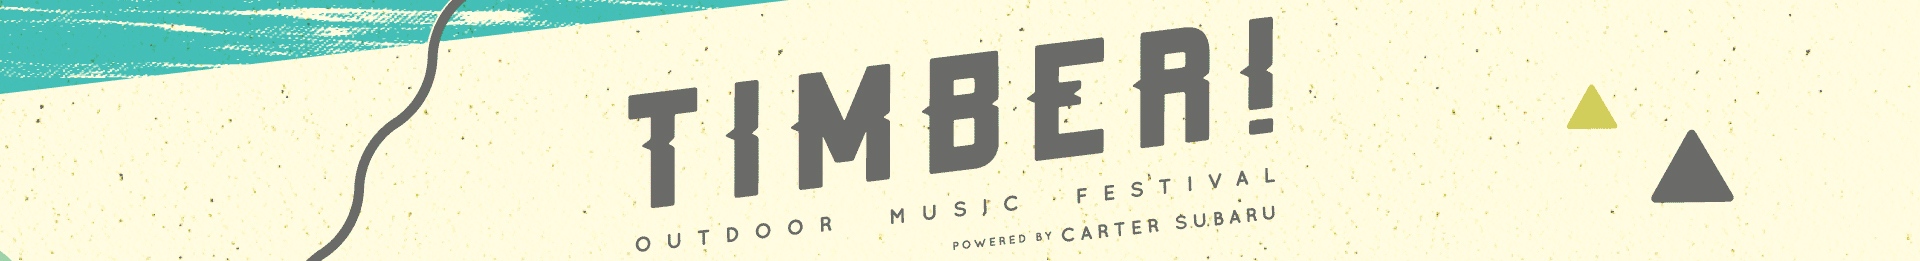 Timber web header